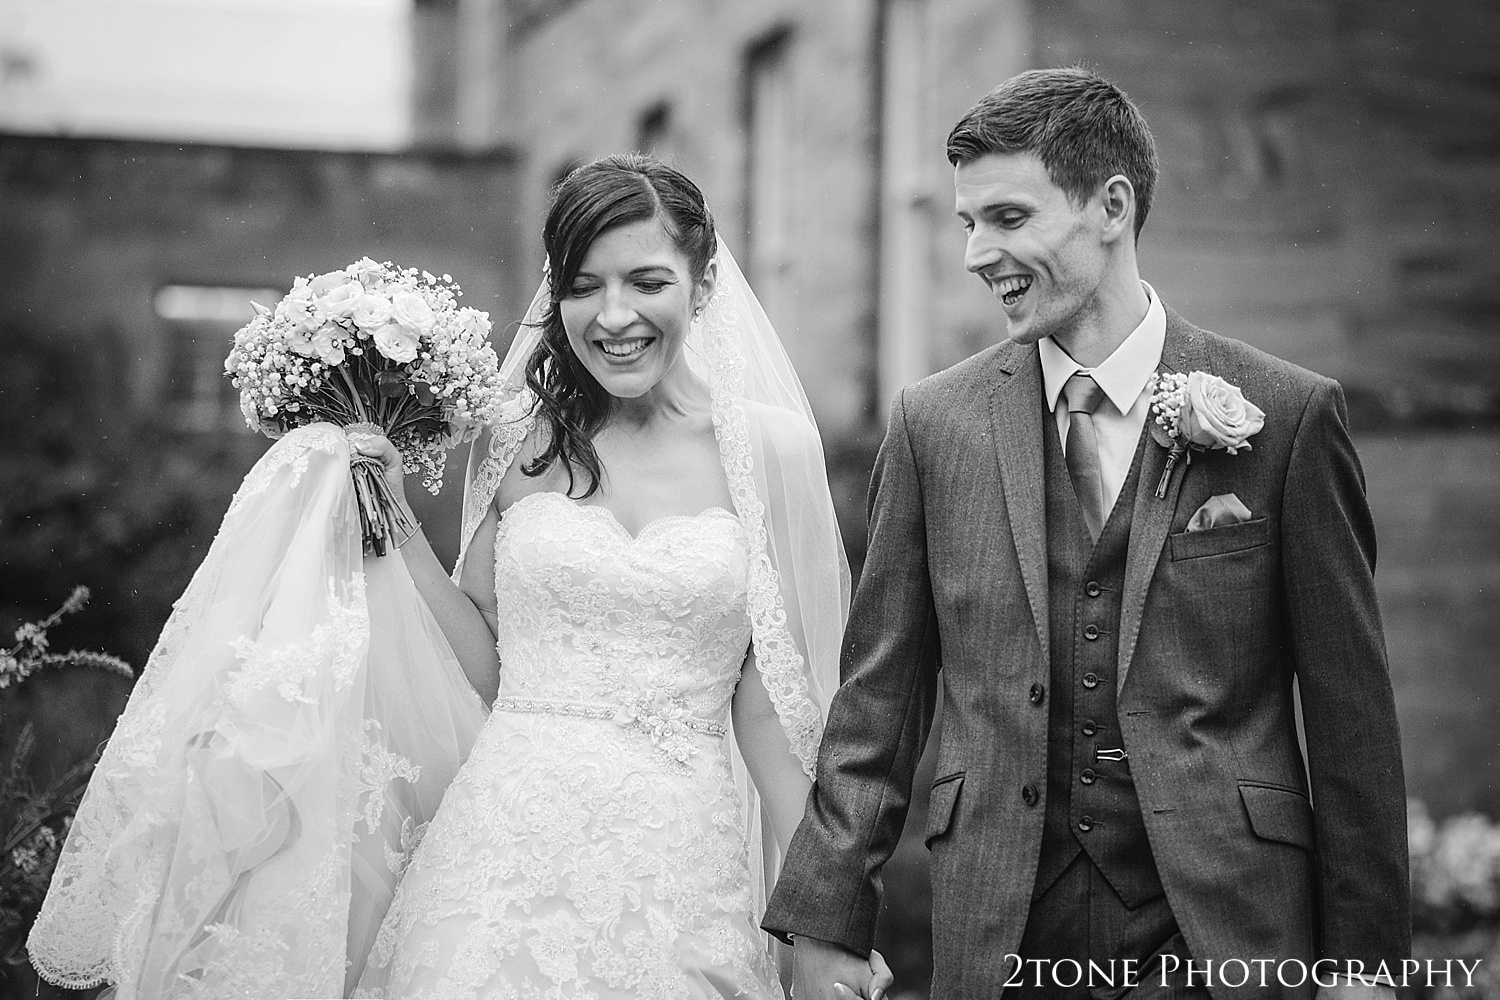 Weddings in the rain at Newton Hall by husband and wife wedding photographer team 2tone Photography.  www.2tonephotography.co.uk